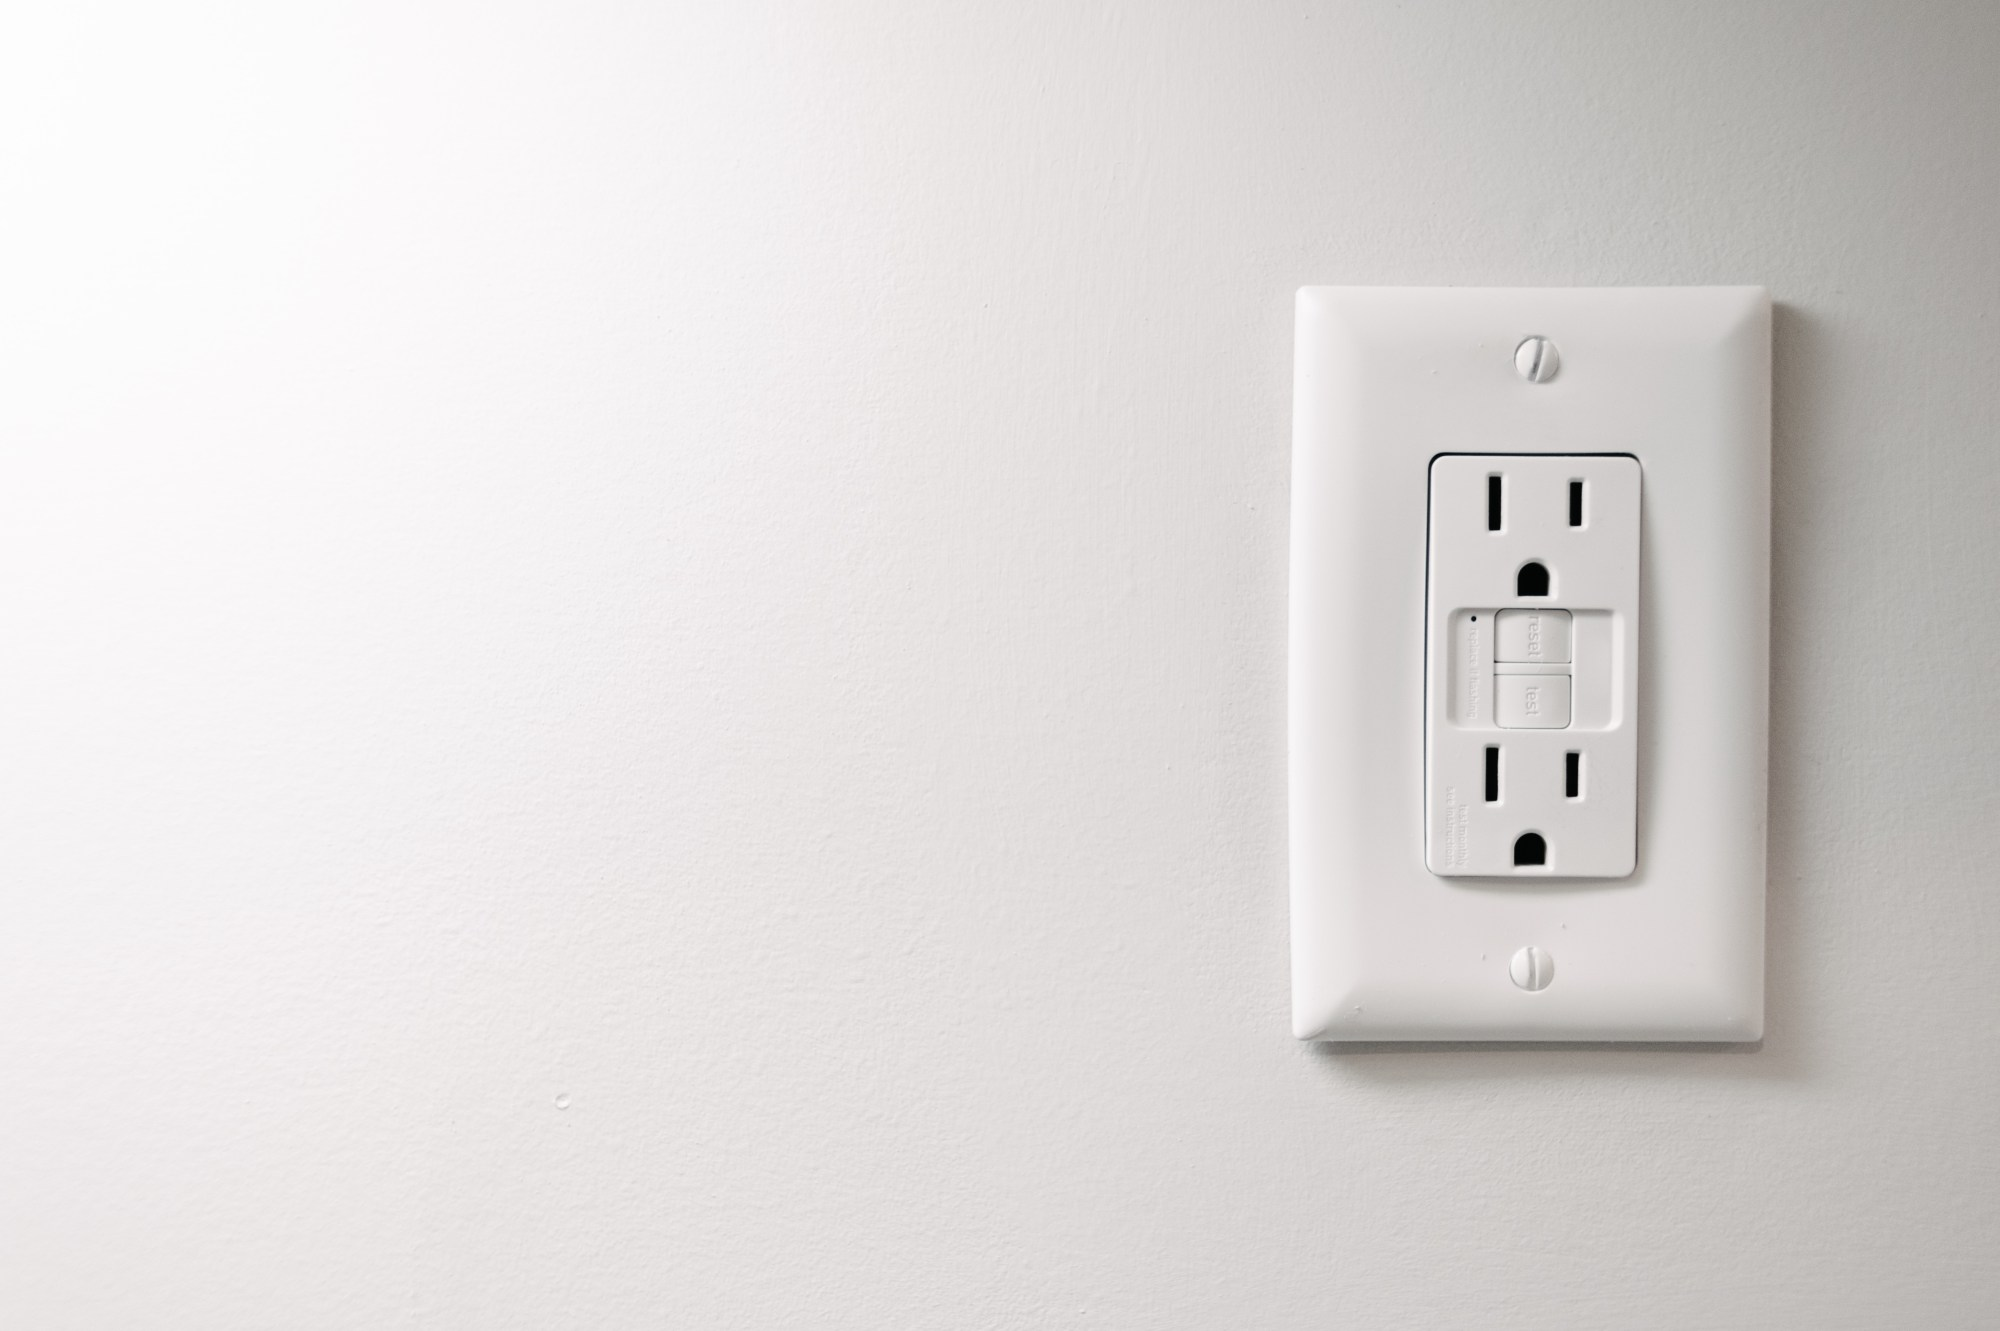 hight resolution of electrical wiring 110 receptacle